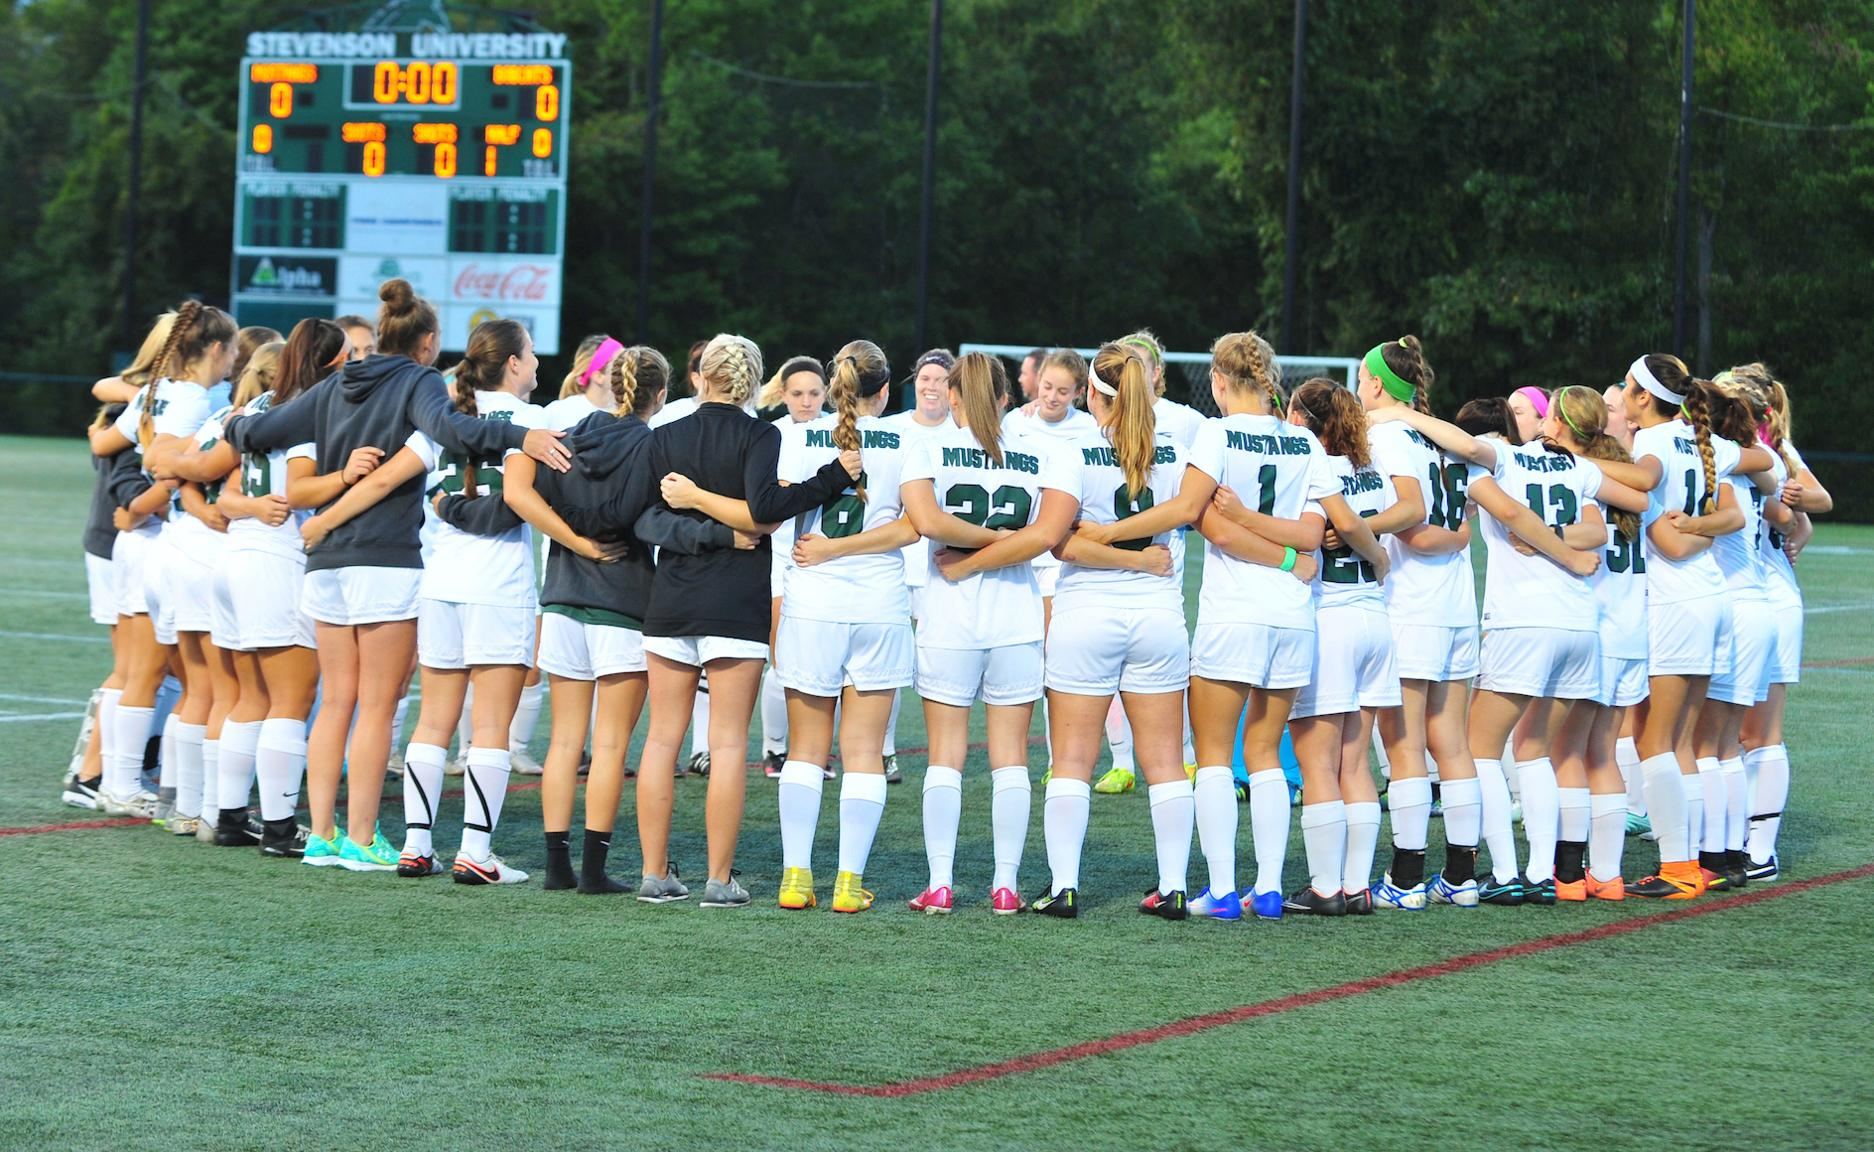 Women's Soccer to Host ID Clinic on Sunday, October 8